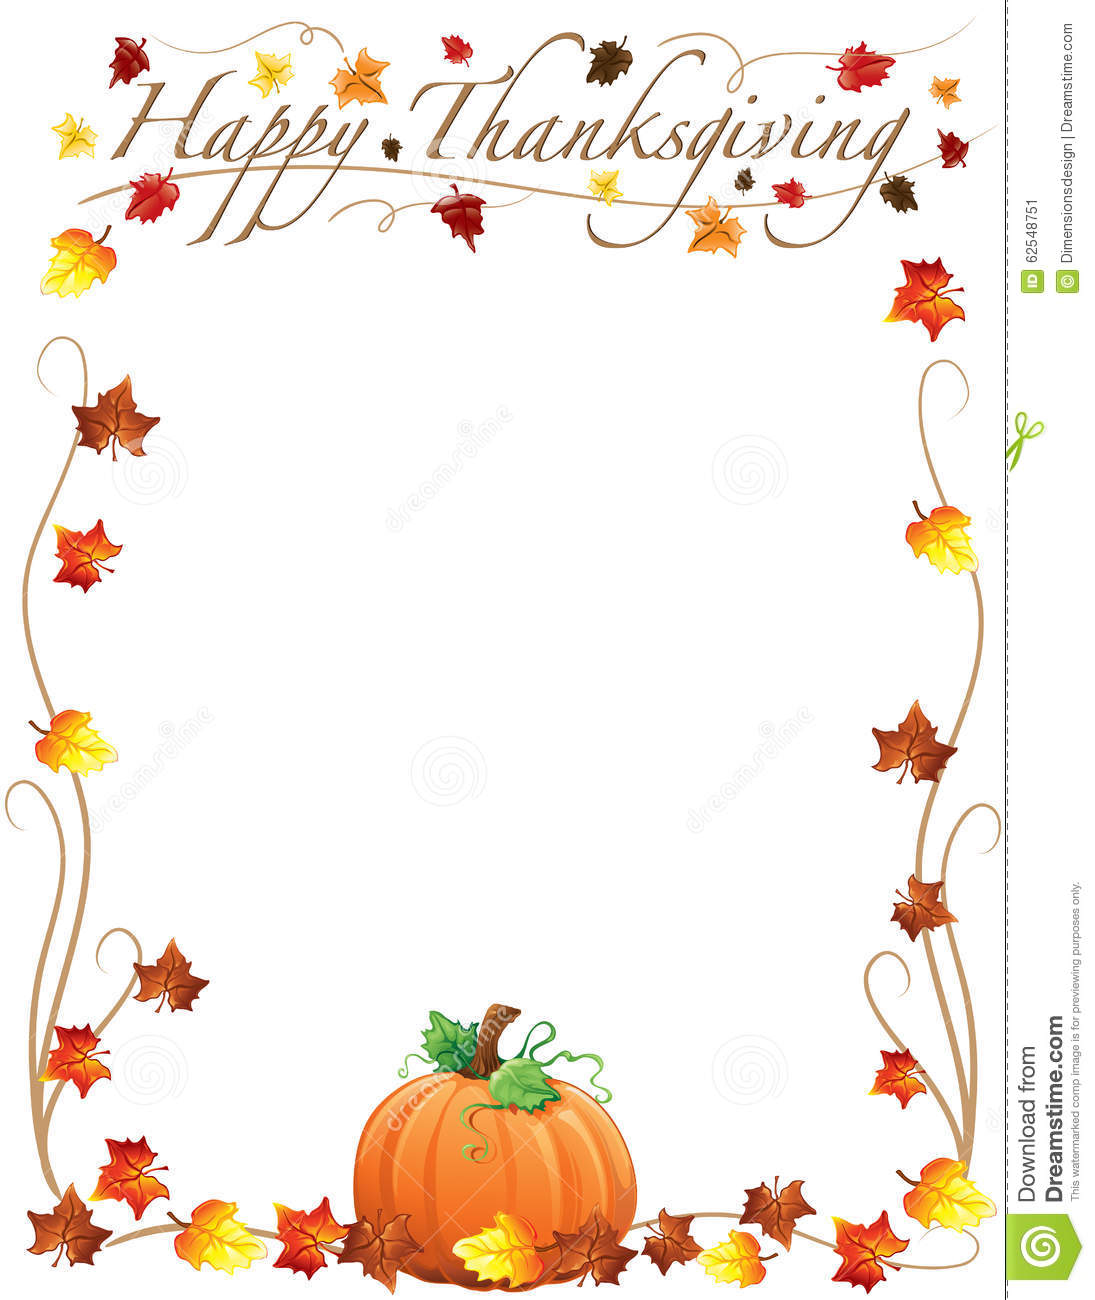 Happy Thanksgiving border with .-Happy Thanksgiving border with .-15